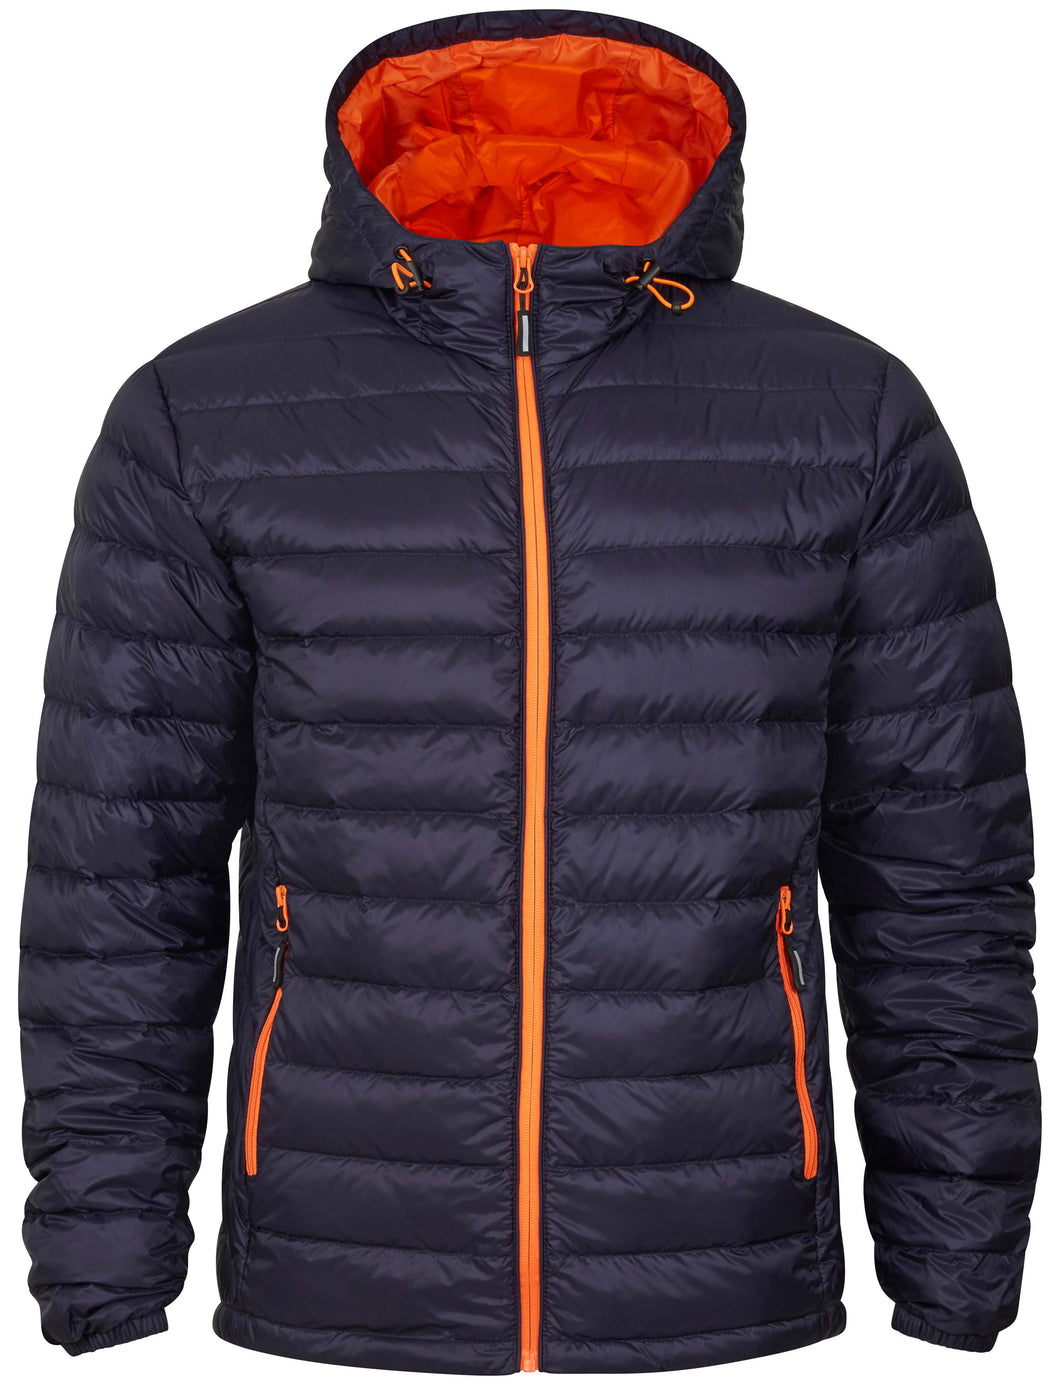 Tracker Superlight Down Hooded Jacket dunjakke med hette, marine/oransje